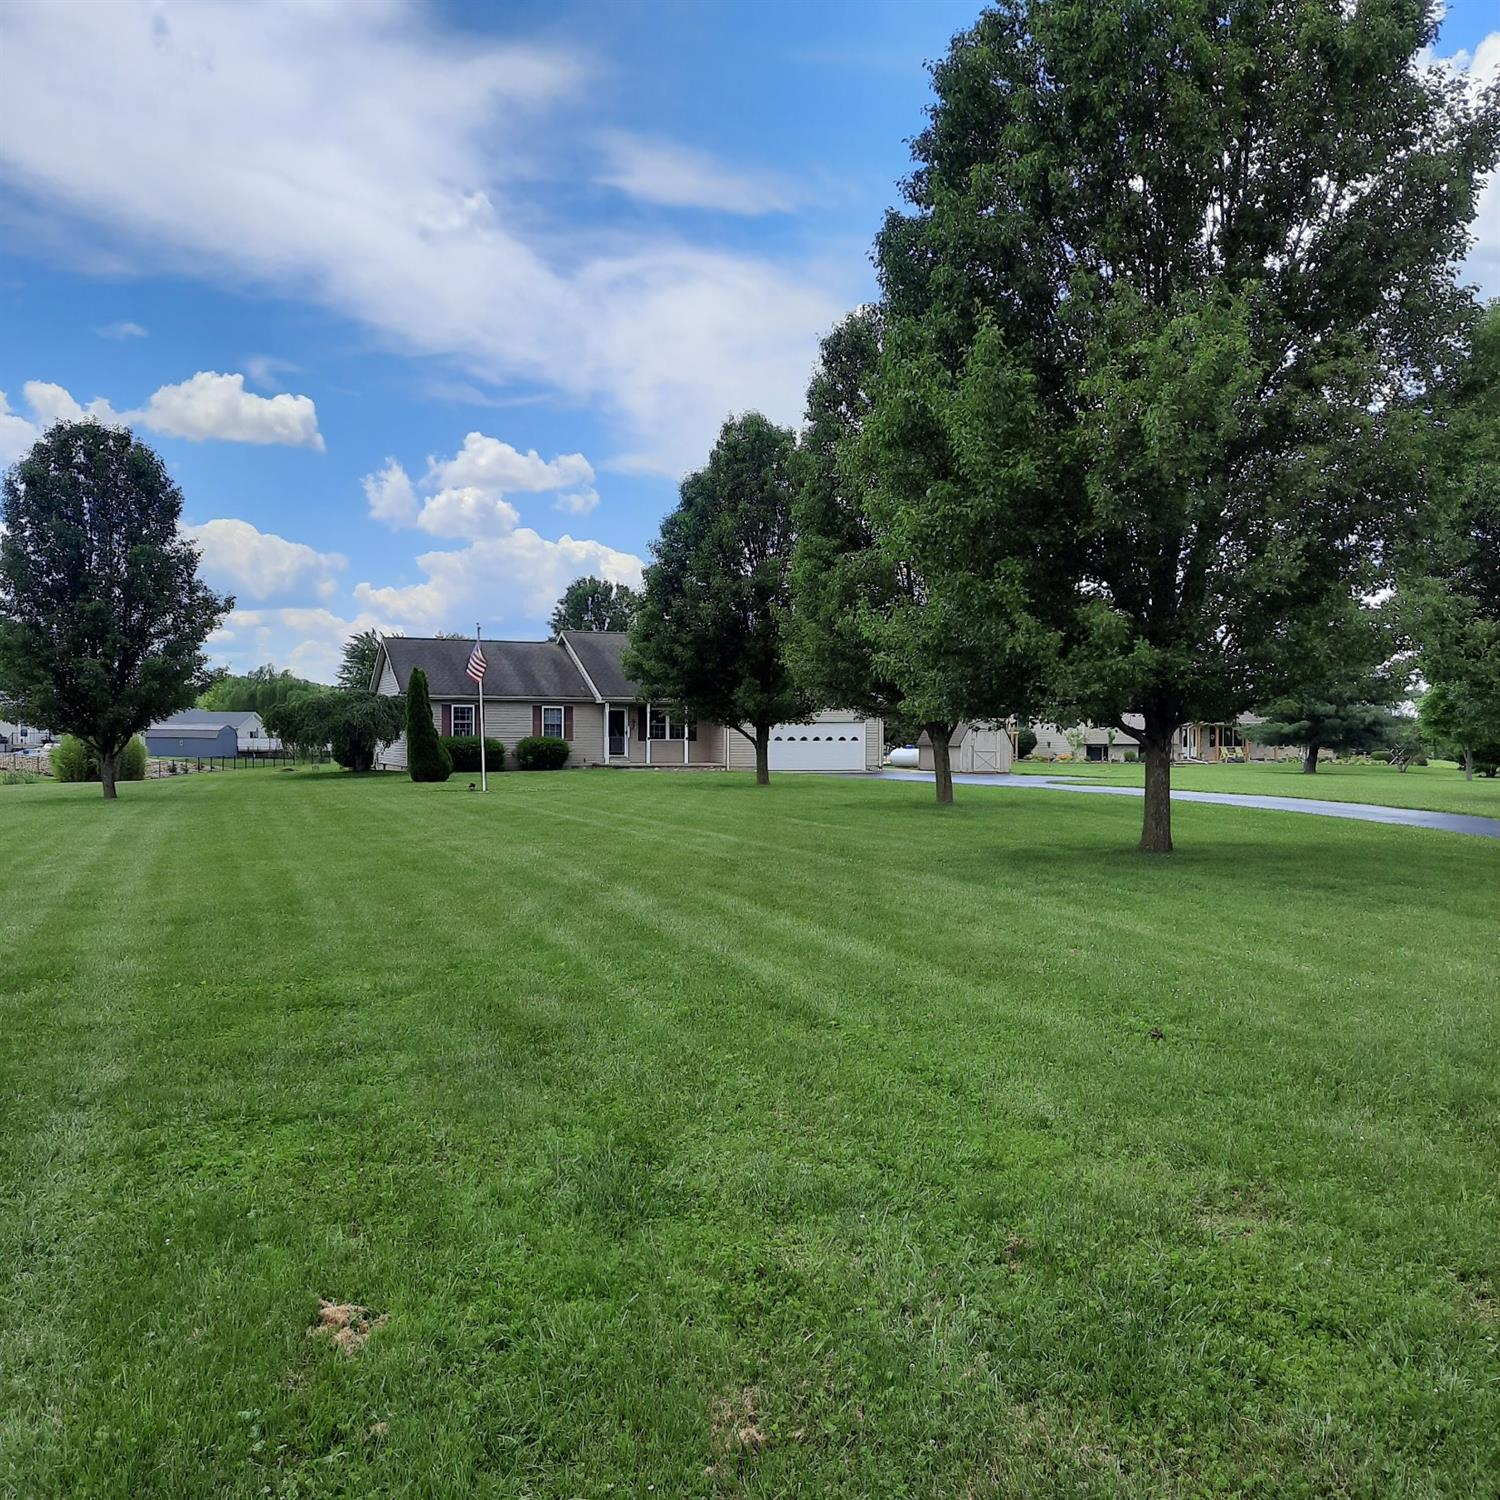 307 Wexford Place, Lynchburg, Ohio 45142, 3 Bedrooms Bedrooms, 6 Rooms Rooms,2 BathroomsBathrooms,Single Family Residence,For Sale,Wexford,1704310